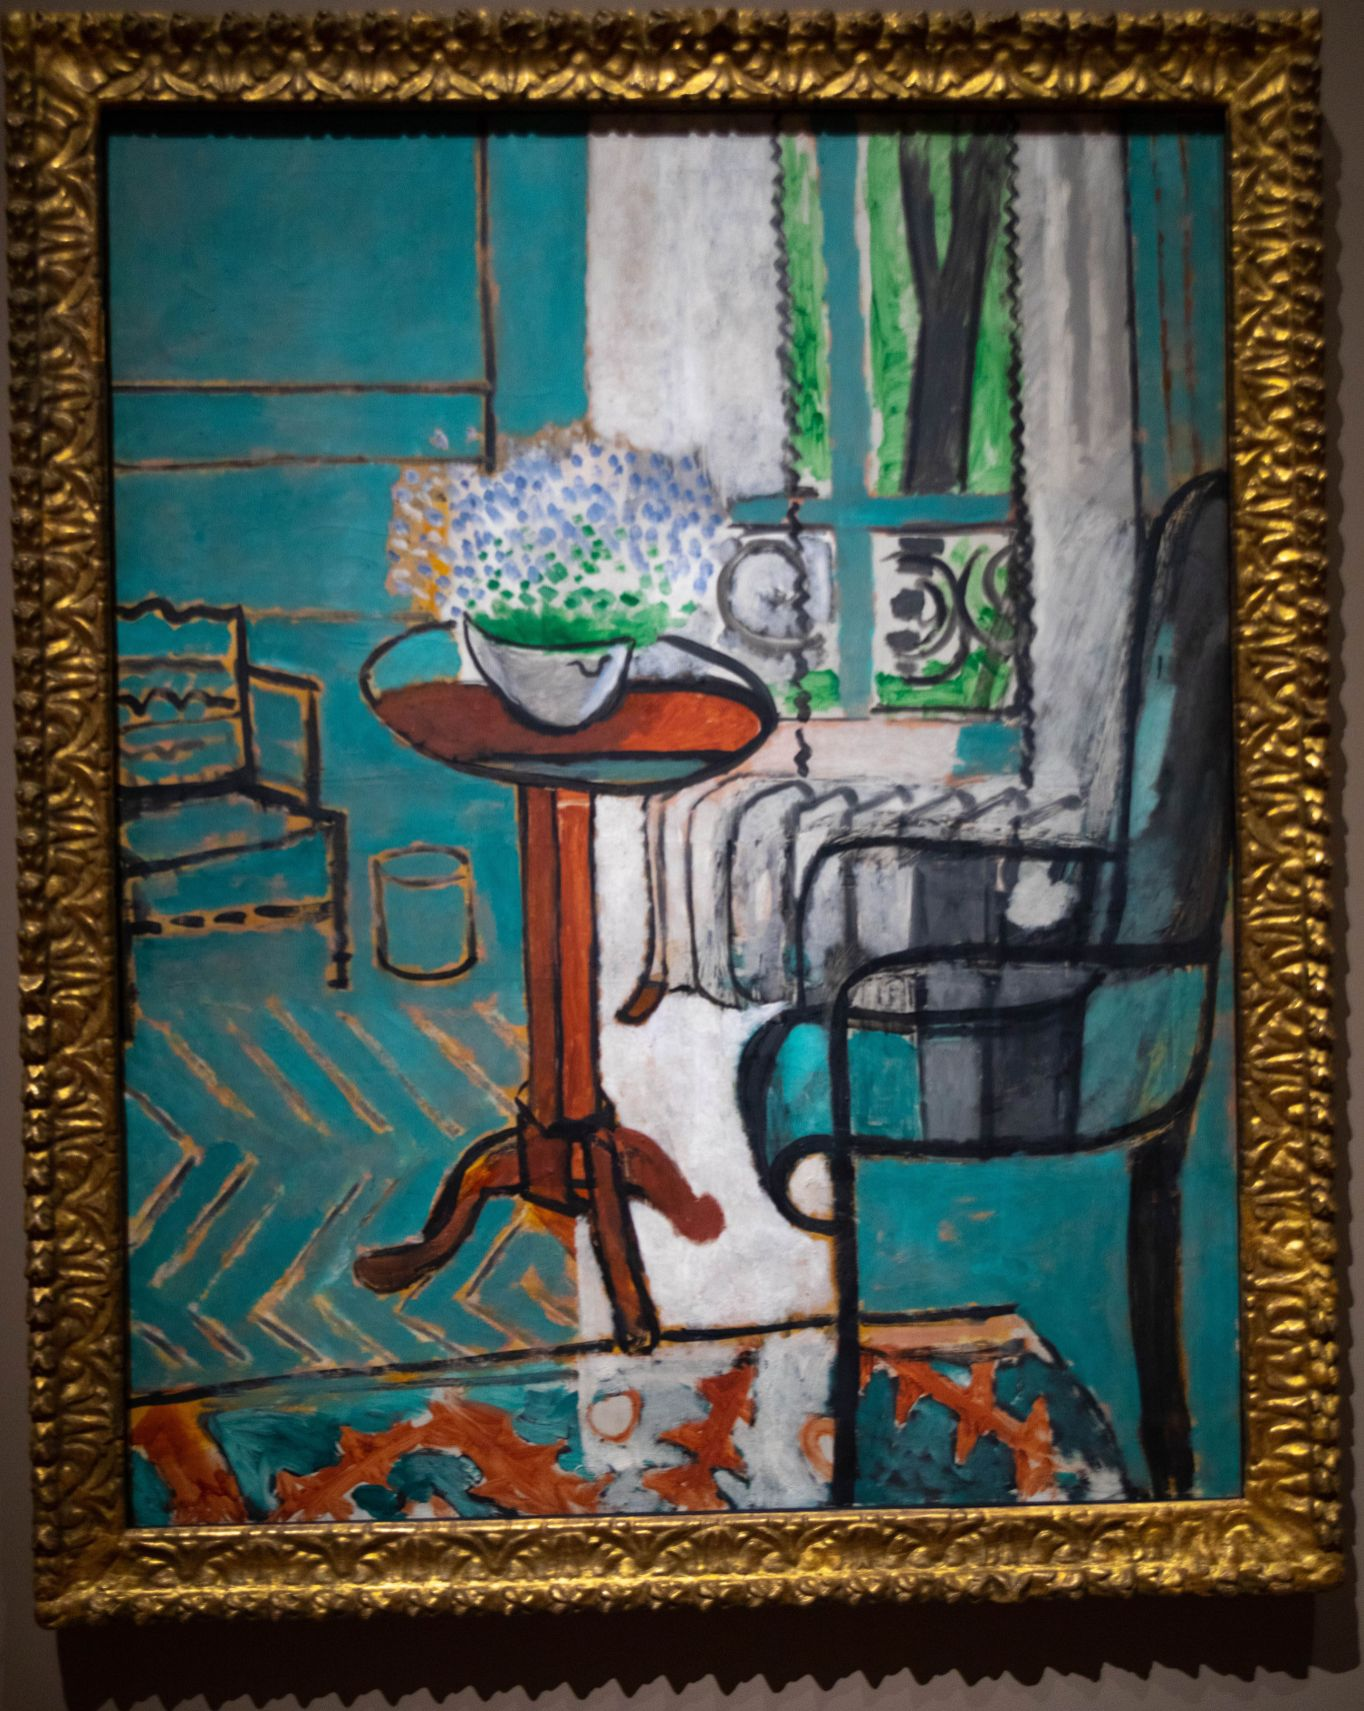 Detroit Travel Guide Detroit Institute of Arts Henri Matisse Painting